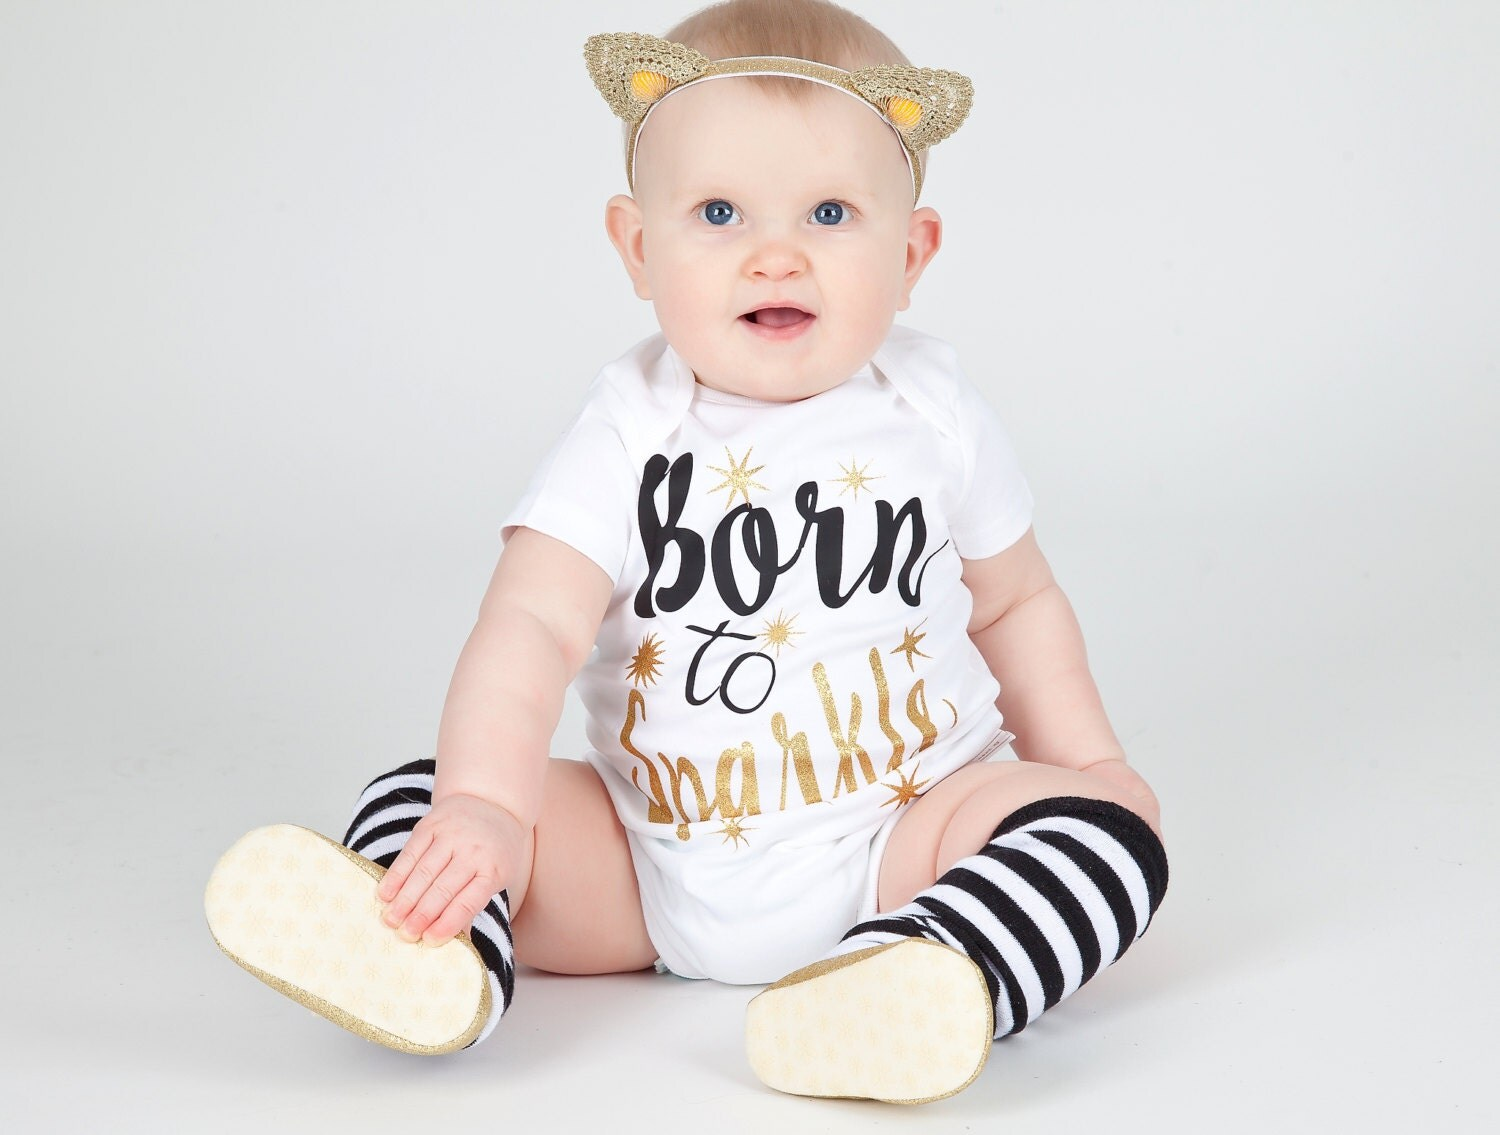 Born To Sparkle  Baby Girl Clothing  Toddler Shirt  Hipster Baby  Glitter Girls T Shirt